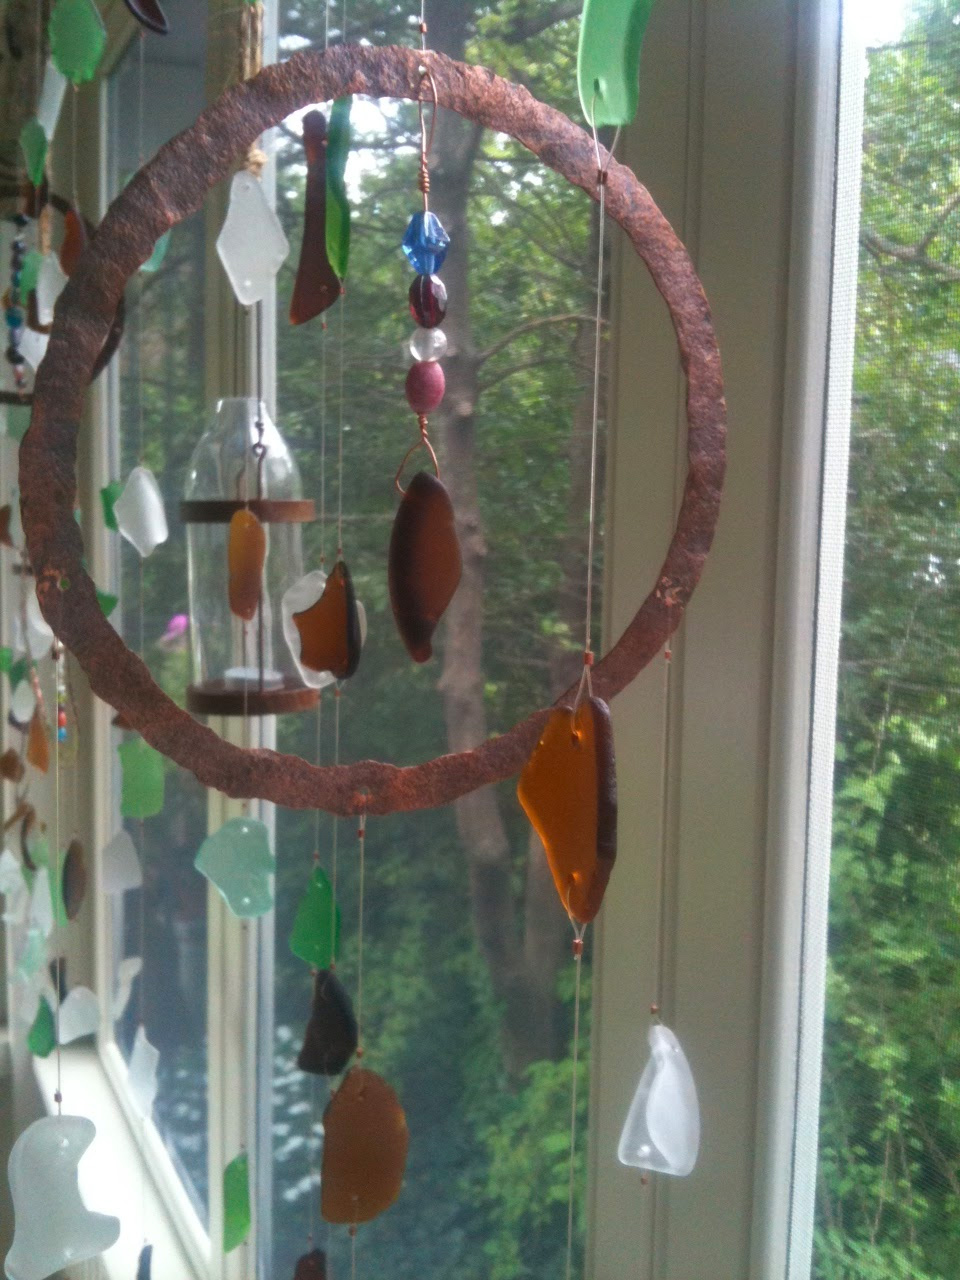 Wimsical wind chimes and a cool drink complete the mood on a hot summer day. Wind chime by Krista McCaffery—Seaglassbeach Trinkets & Treasures